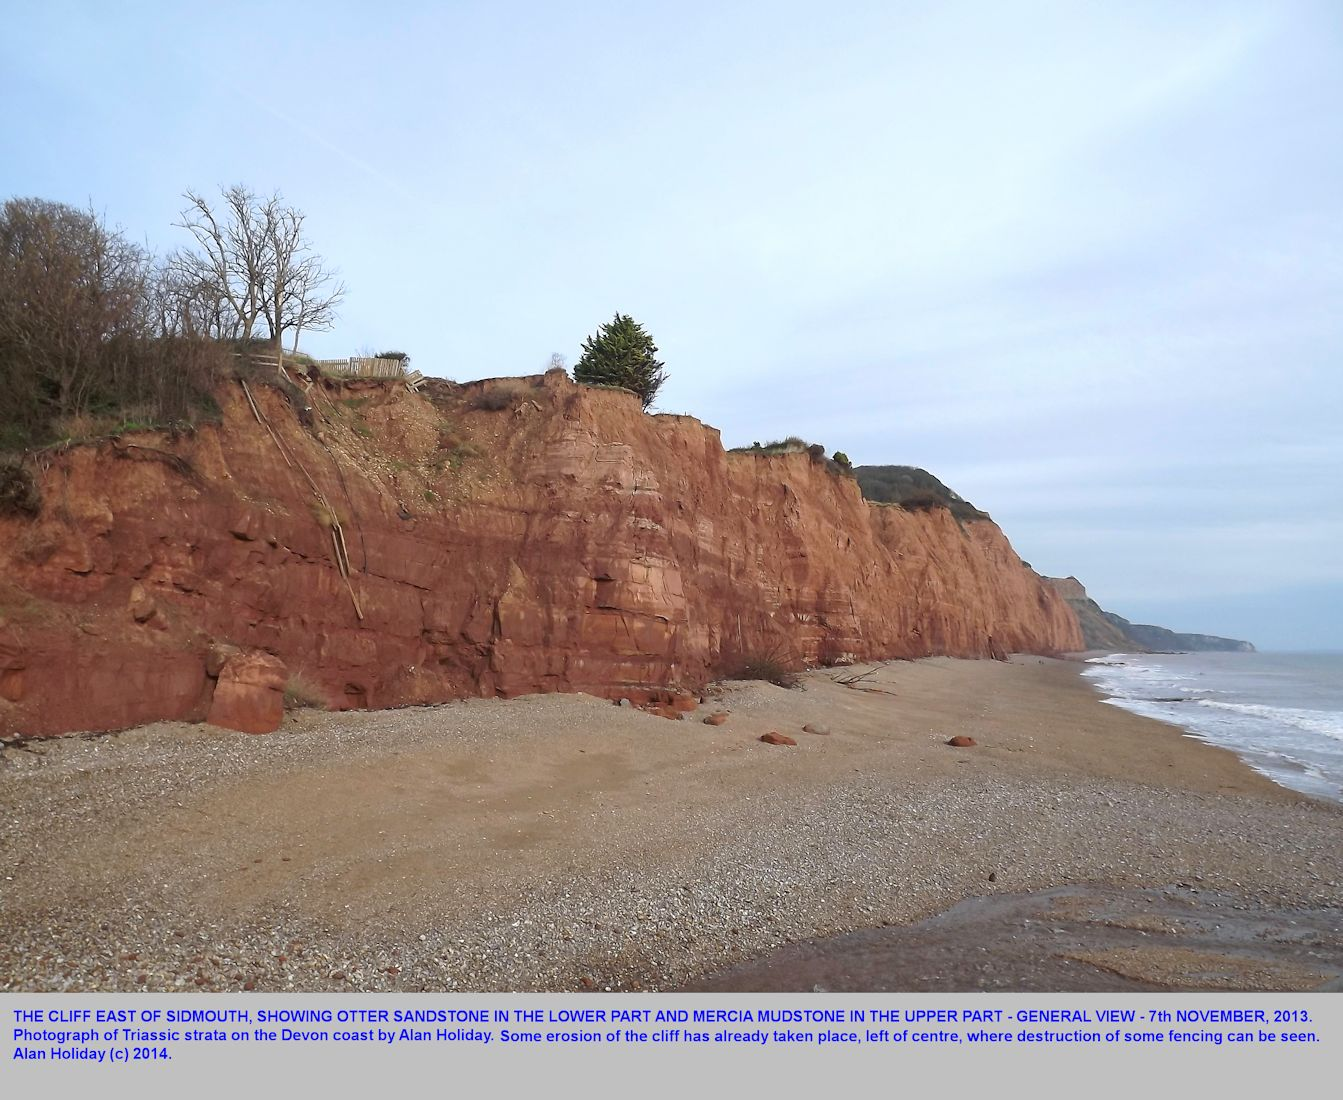 A view of the cliffs east of Sidmouth, Devon, showing the top of the Otter Sandstone and the base of the Mercia Mudstone, 7th November 2013, photograph by Alan Holiday